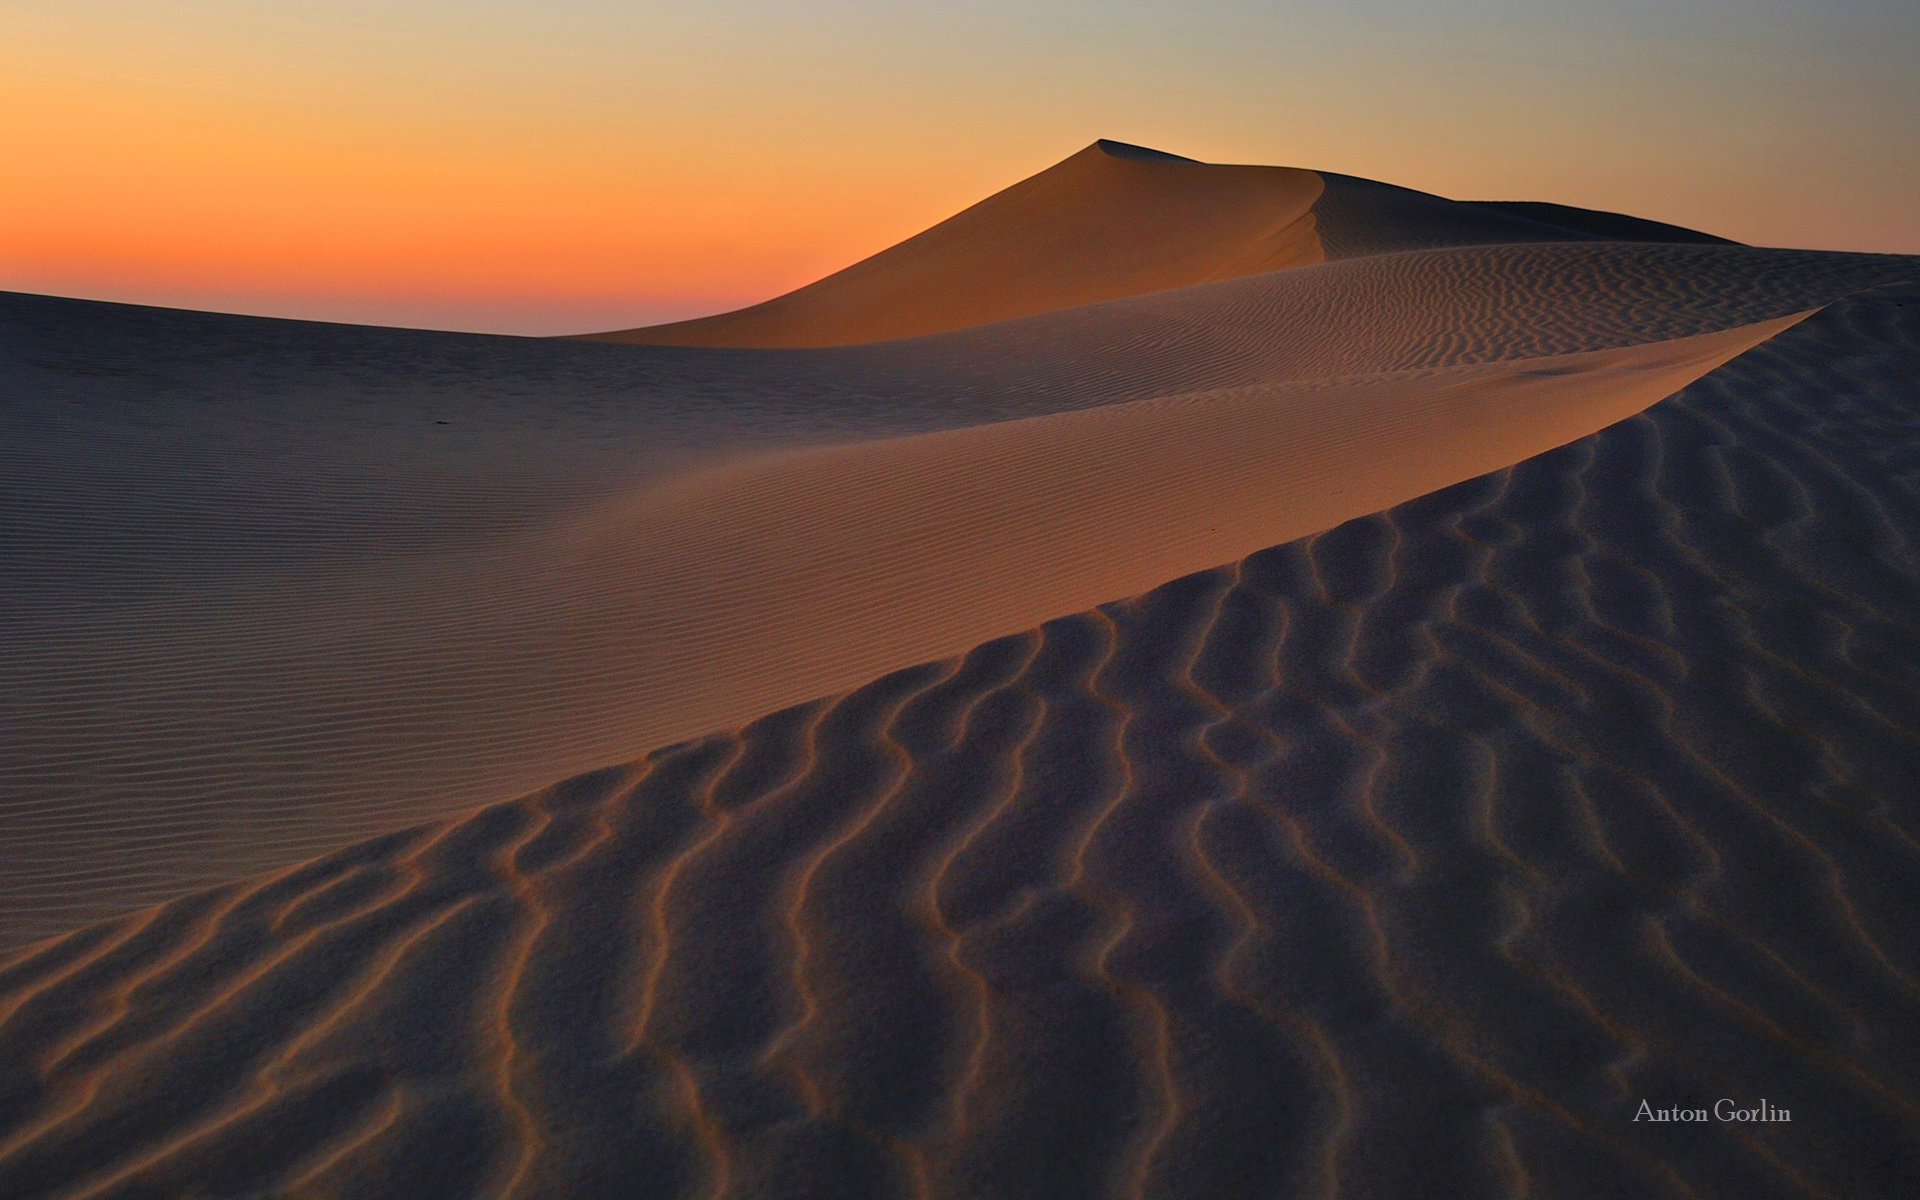 Original Iphone Wallpaper Earth Evening Desert Wallpapers Evening Desert Stock Photos